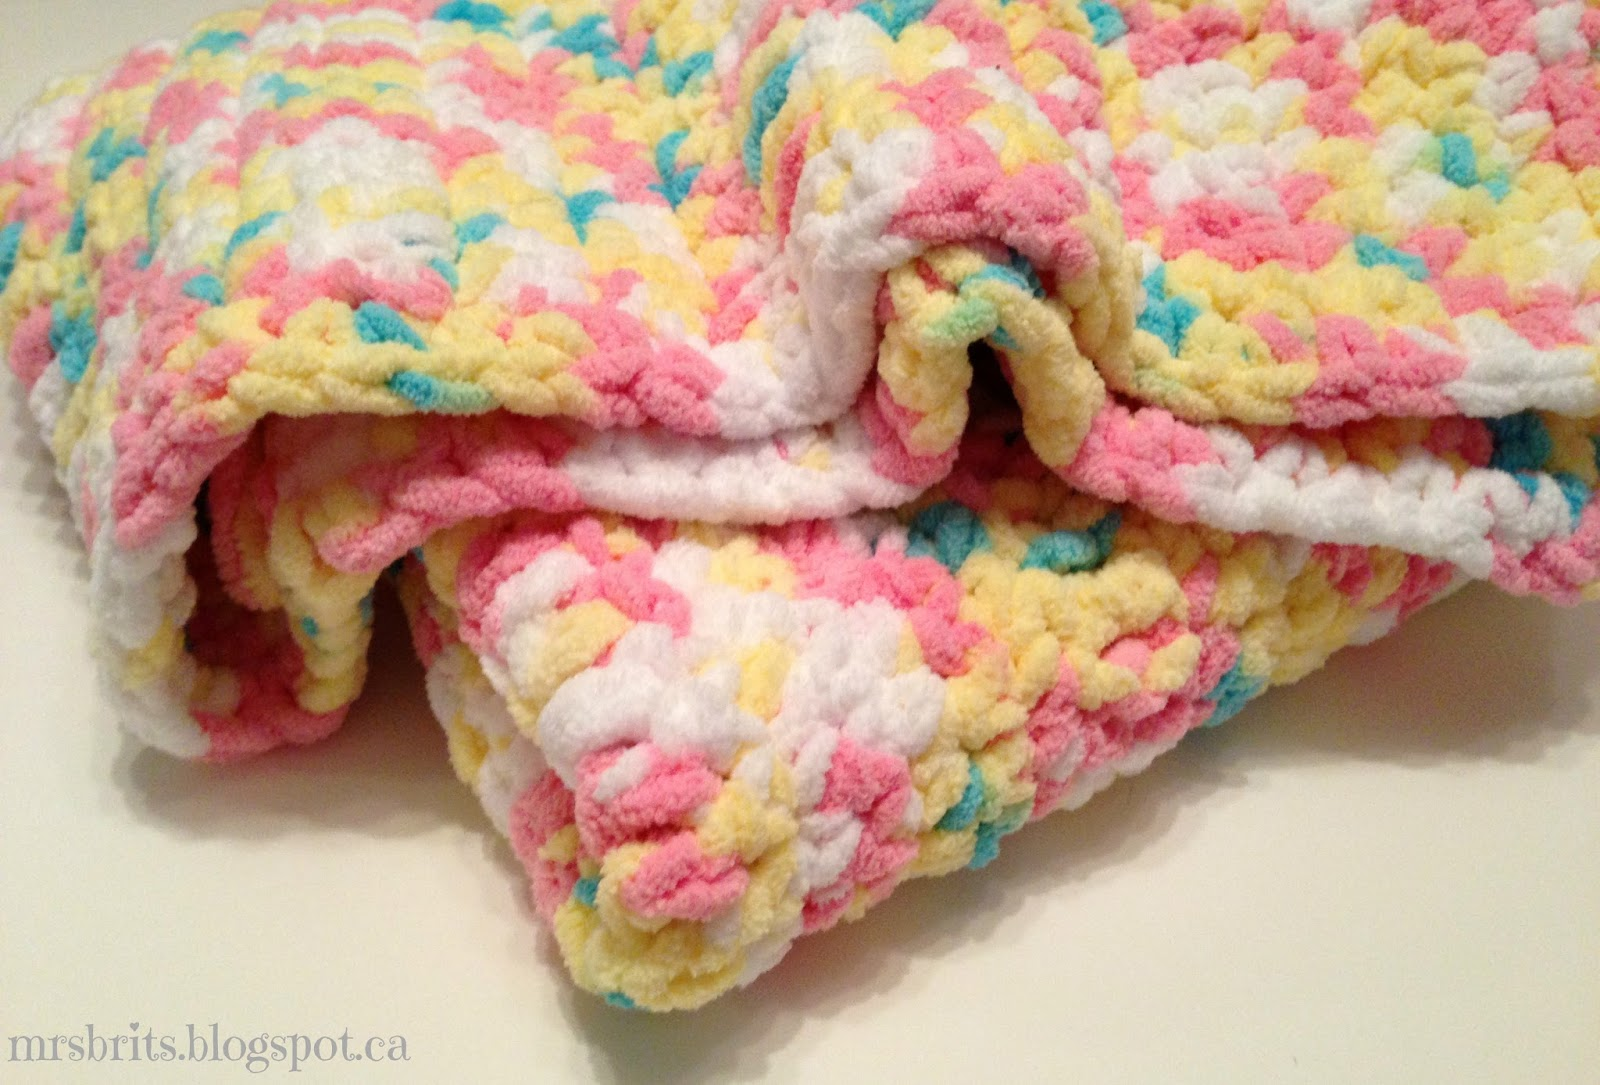 Crochet Patterns Bernat Blanket Yarn : MrsBrits: Sweet and Chunky Baby Afghan {Crochet Pattern}